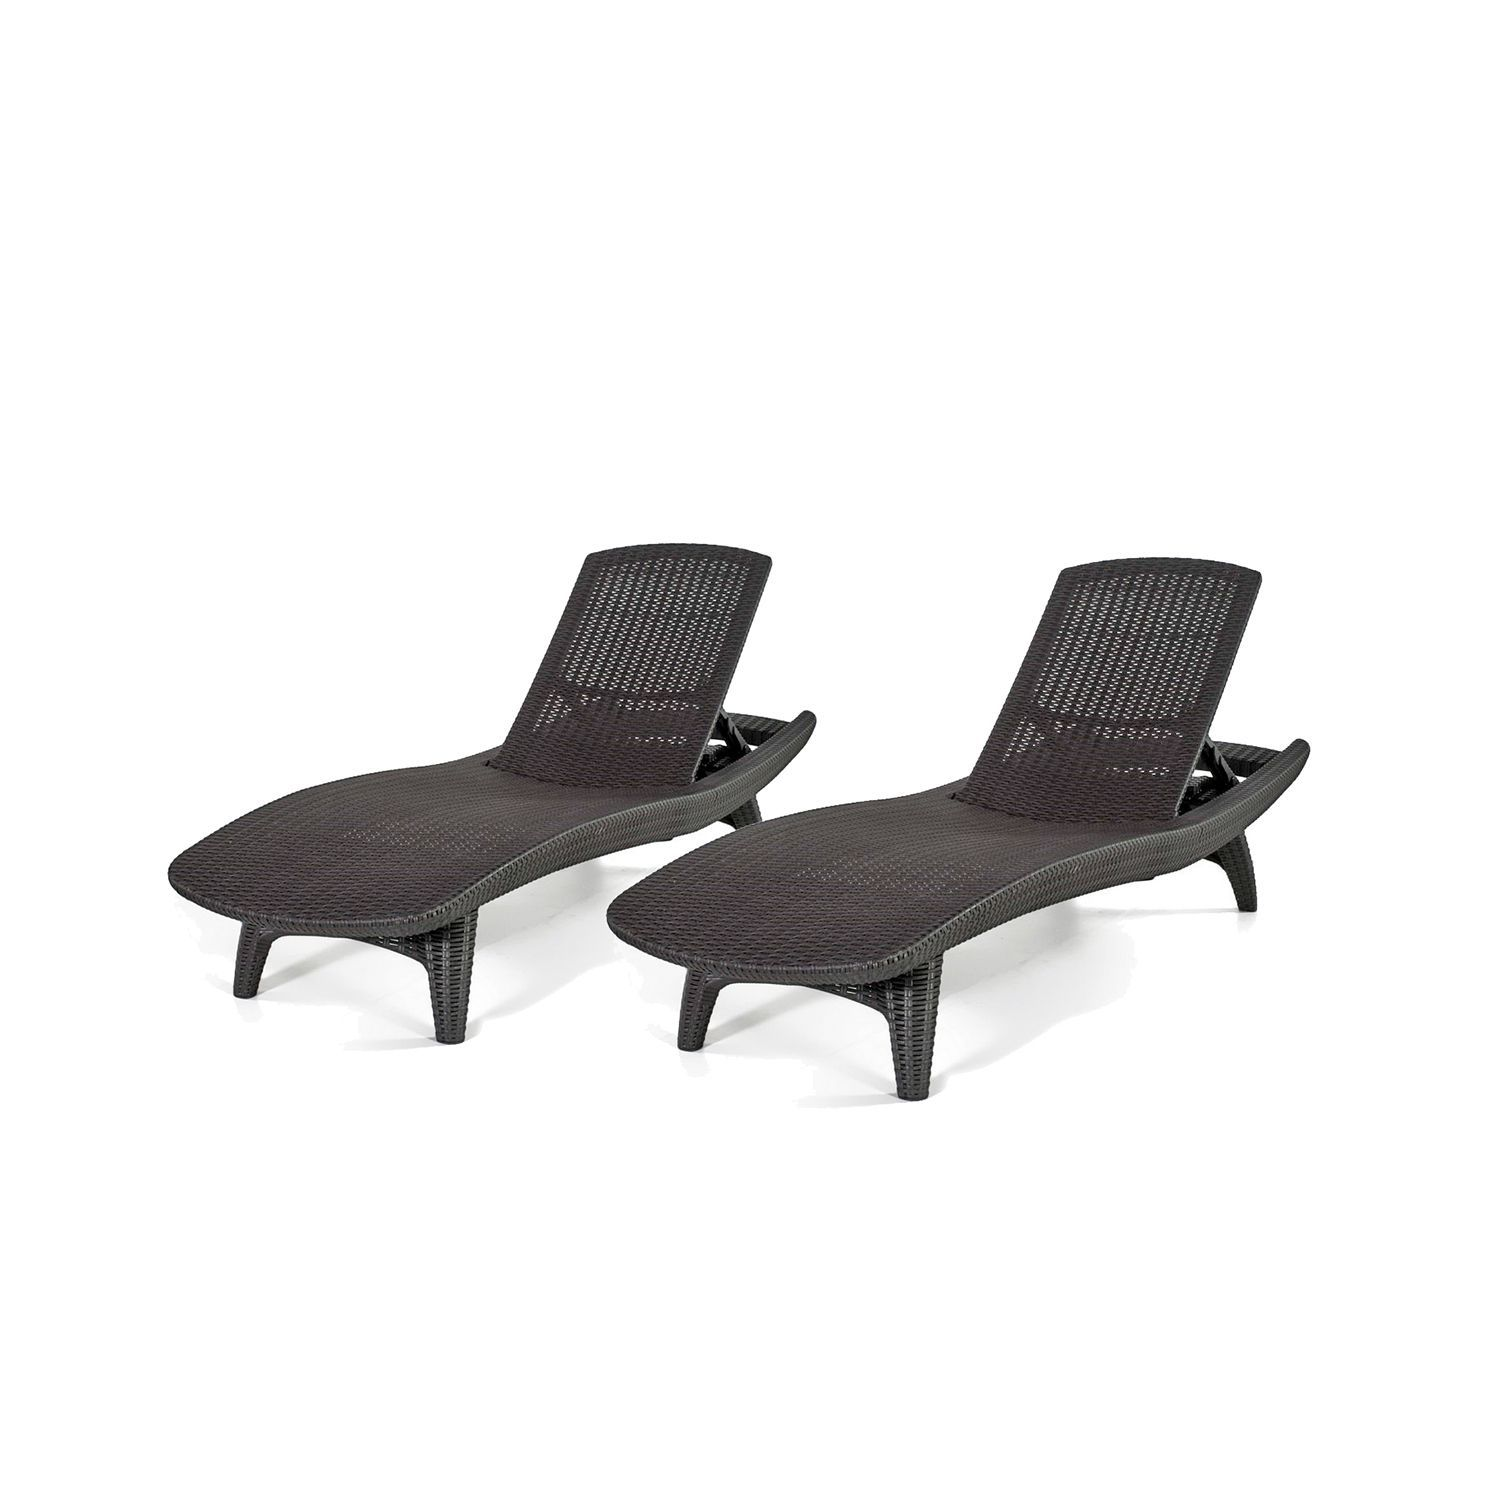 Keter 2 Pack Adjustable Chaise Lounge All Weather Outdoor Furniture Grey Sam S Club Lounge Chair Outdoor Chaise Lounger Patio Chaise